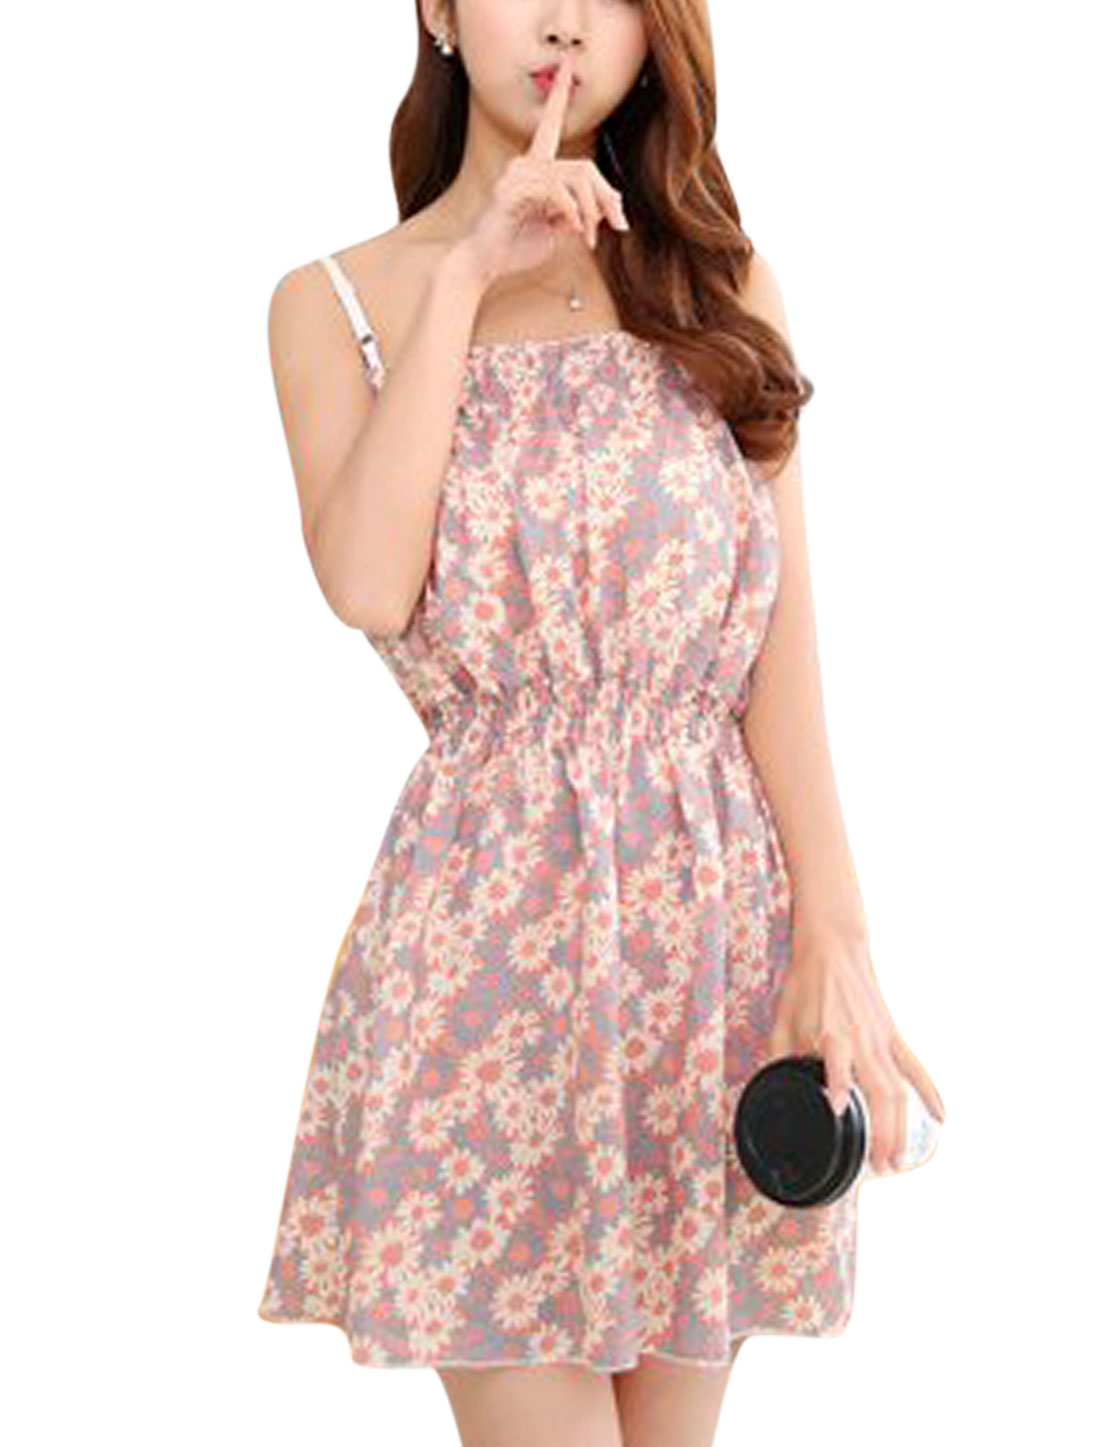 Woman Floral Prints Adjustable Spaghetti Strap Unlined A Line Dress Pink XS